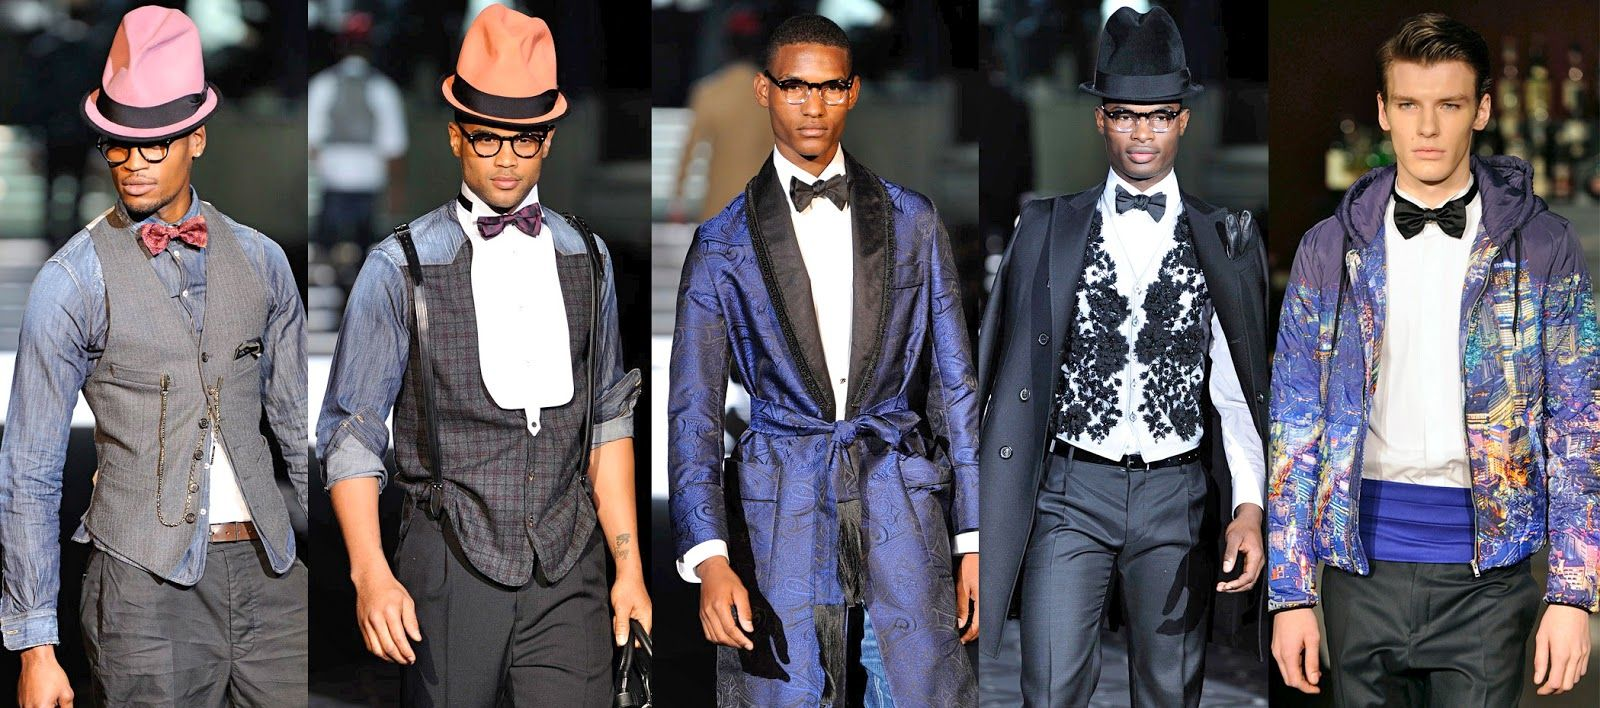 oneoffpinkribbon...: Bow ties rocking at Men's Milan Fashion Week